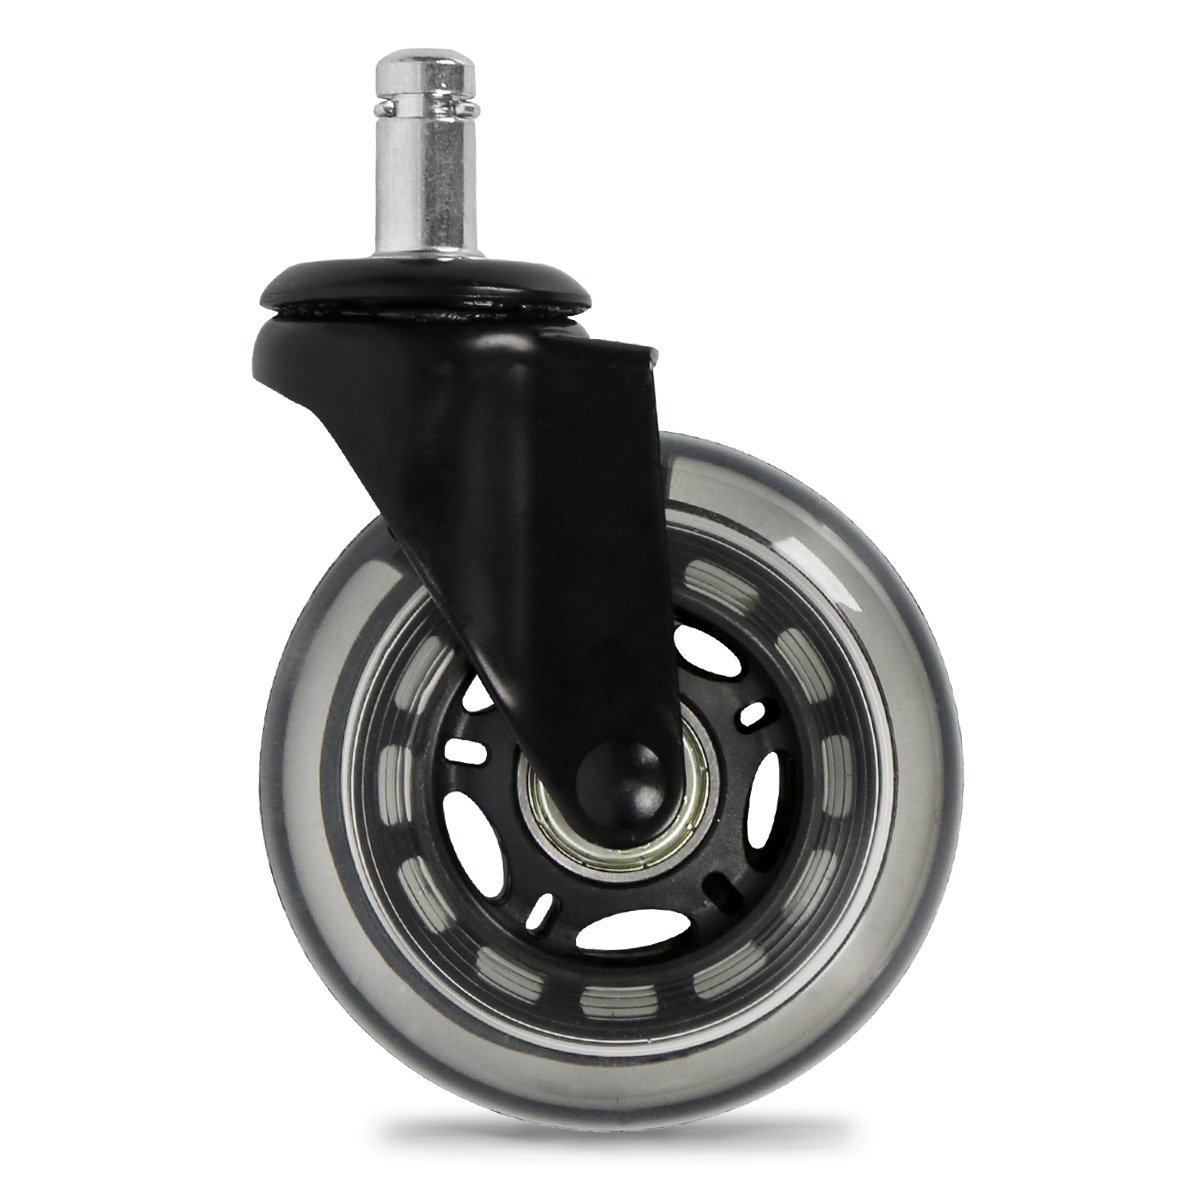 Cusfull premium office chair caster wheels replacement for 3 furniture casters